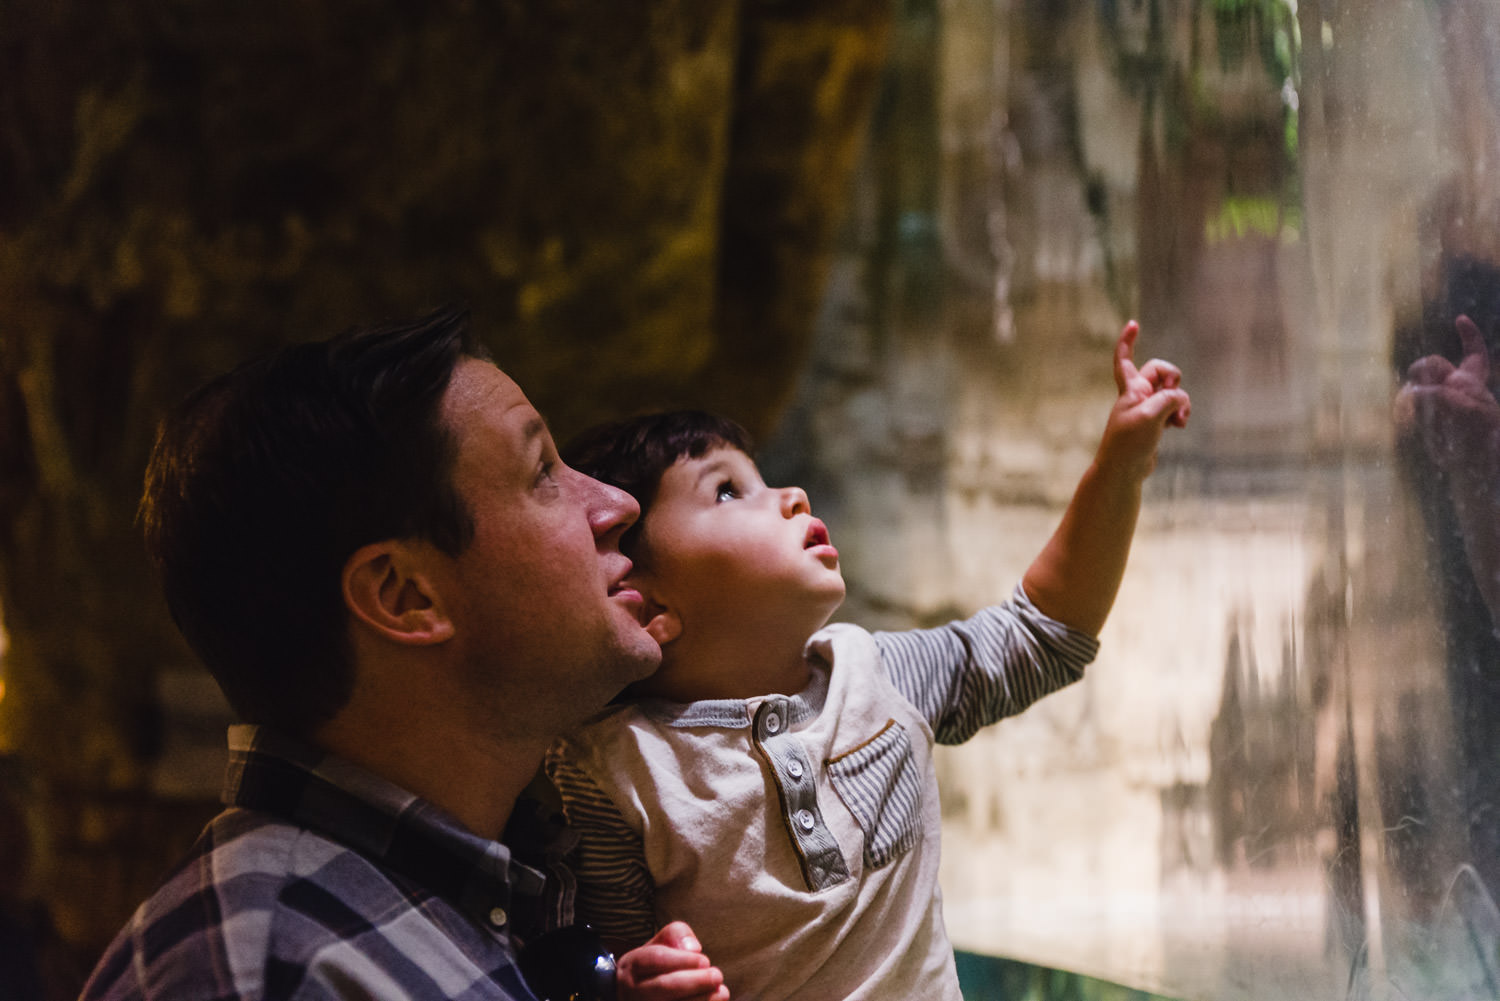 A boy and his father look at an exhibit at the Bronx Zoo.